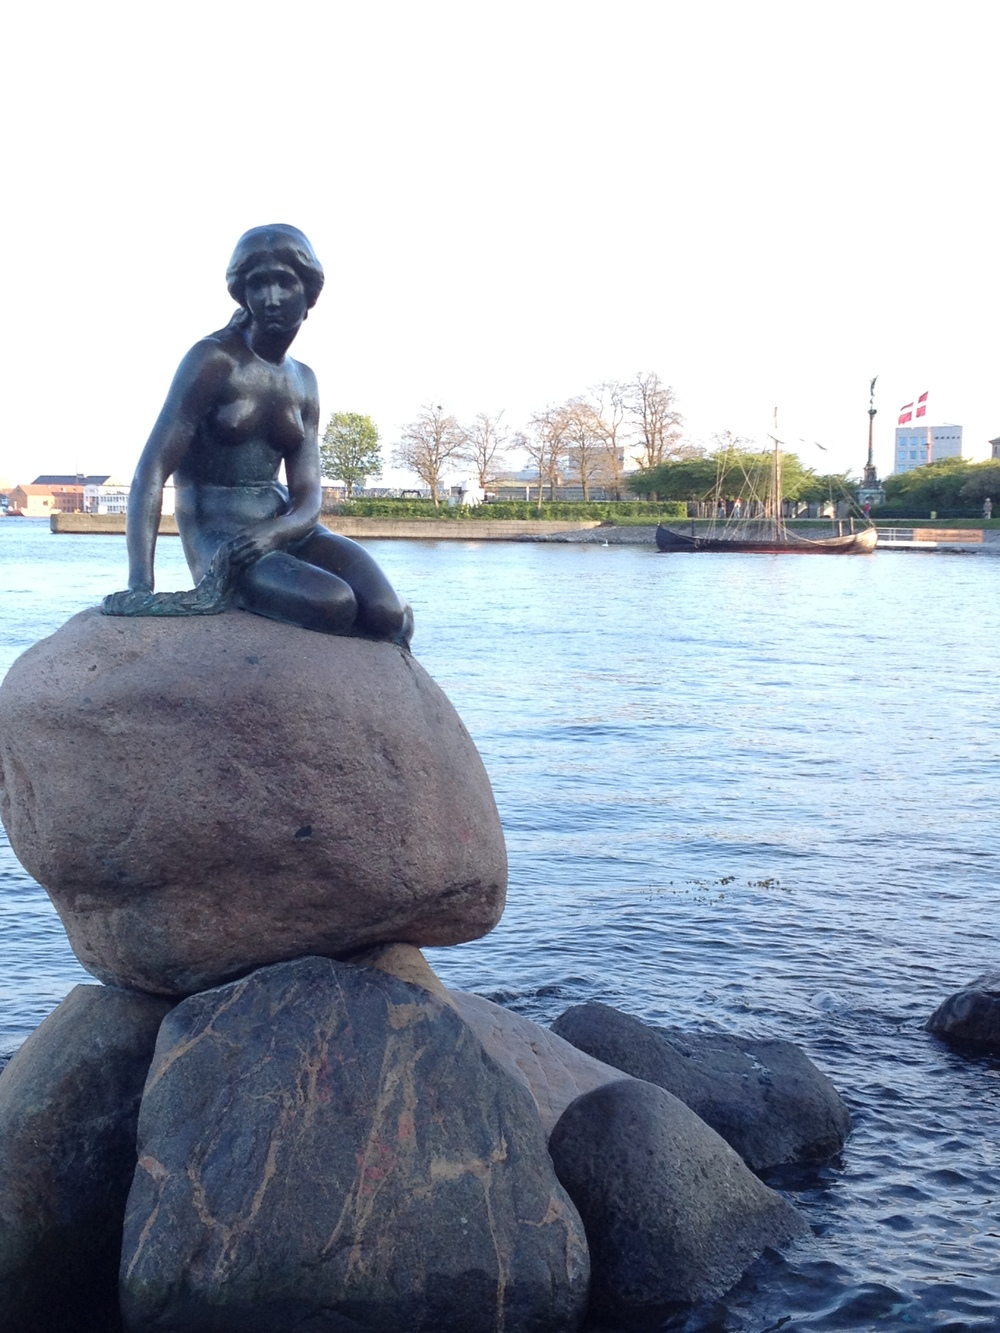 The Little Mermaid Statue in remembrance of Hans Christian Andersen's Work